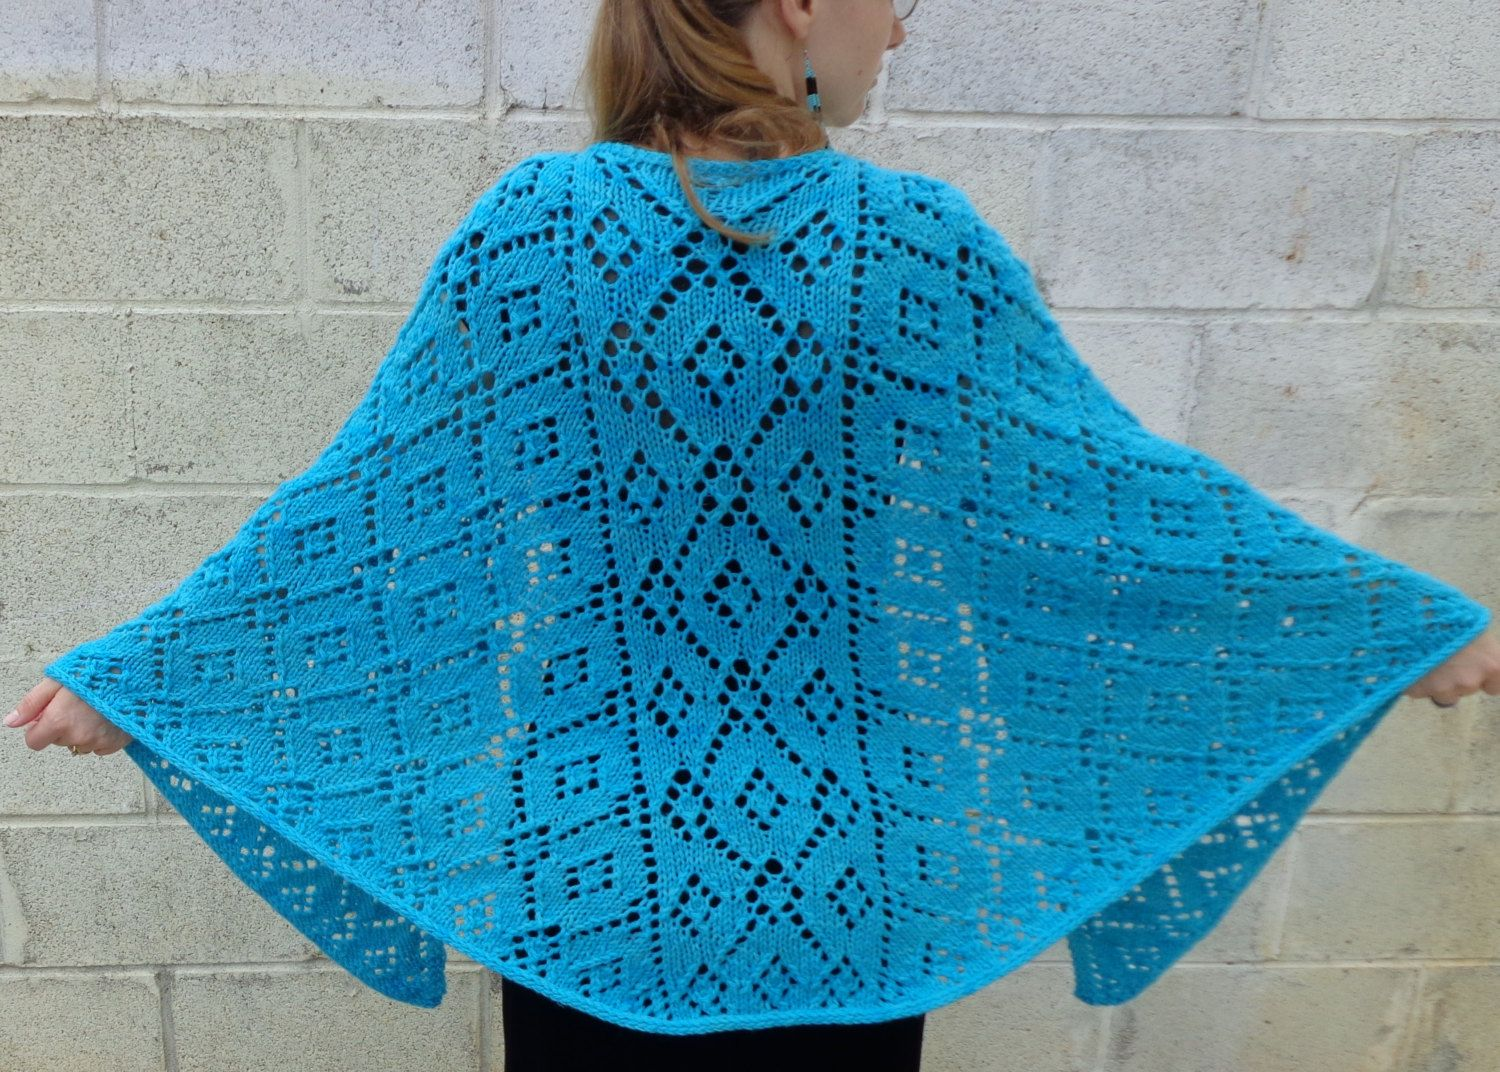 Shawl pdf pattern faroese shaped knitting pattern lace shawl shawl pdf pattern faroese shaped knitting pattern lace shawl original design bankloansurffo Image collections